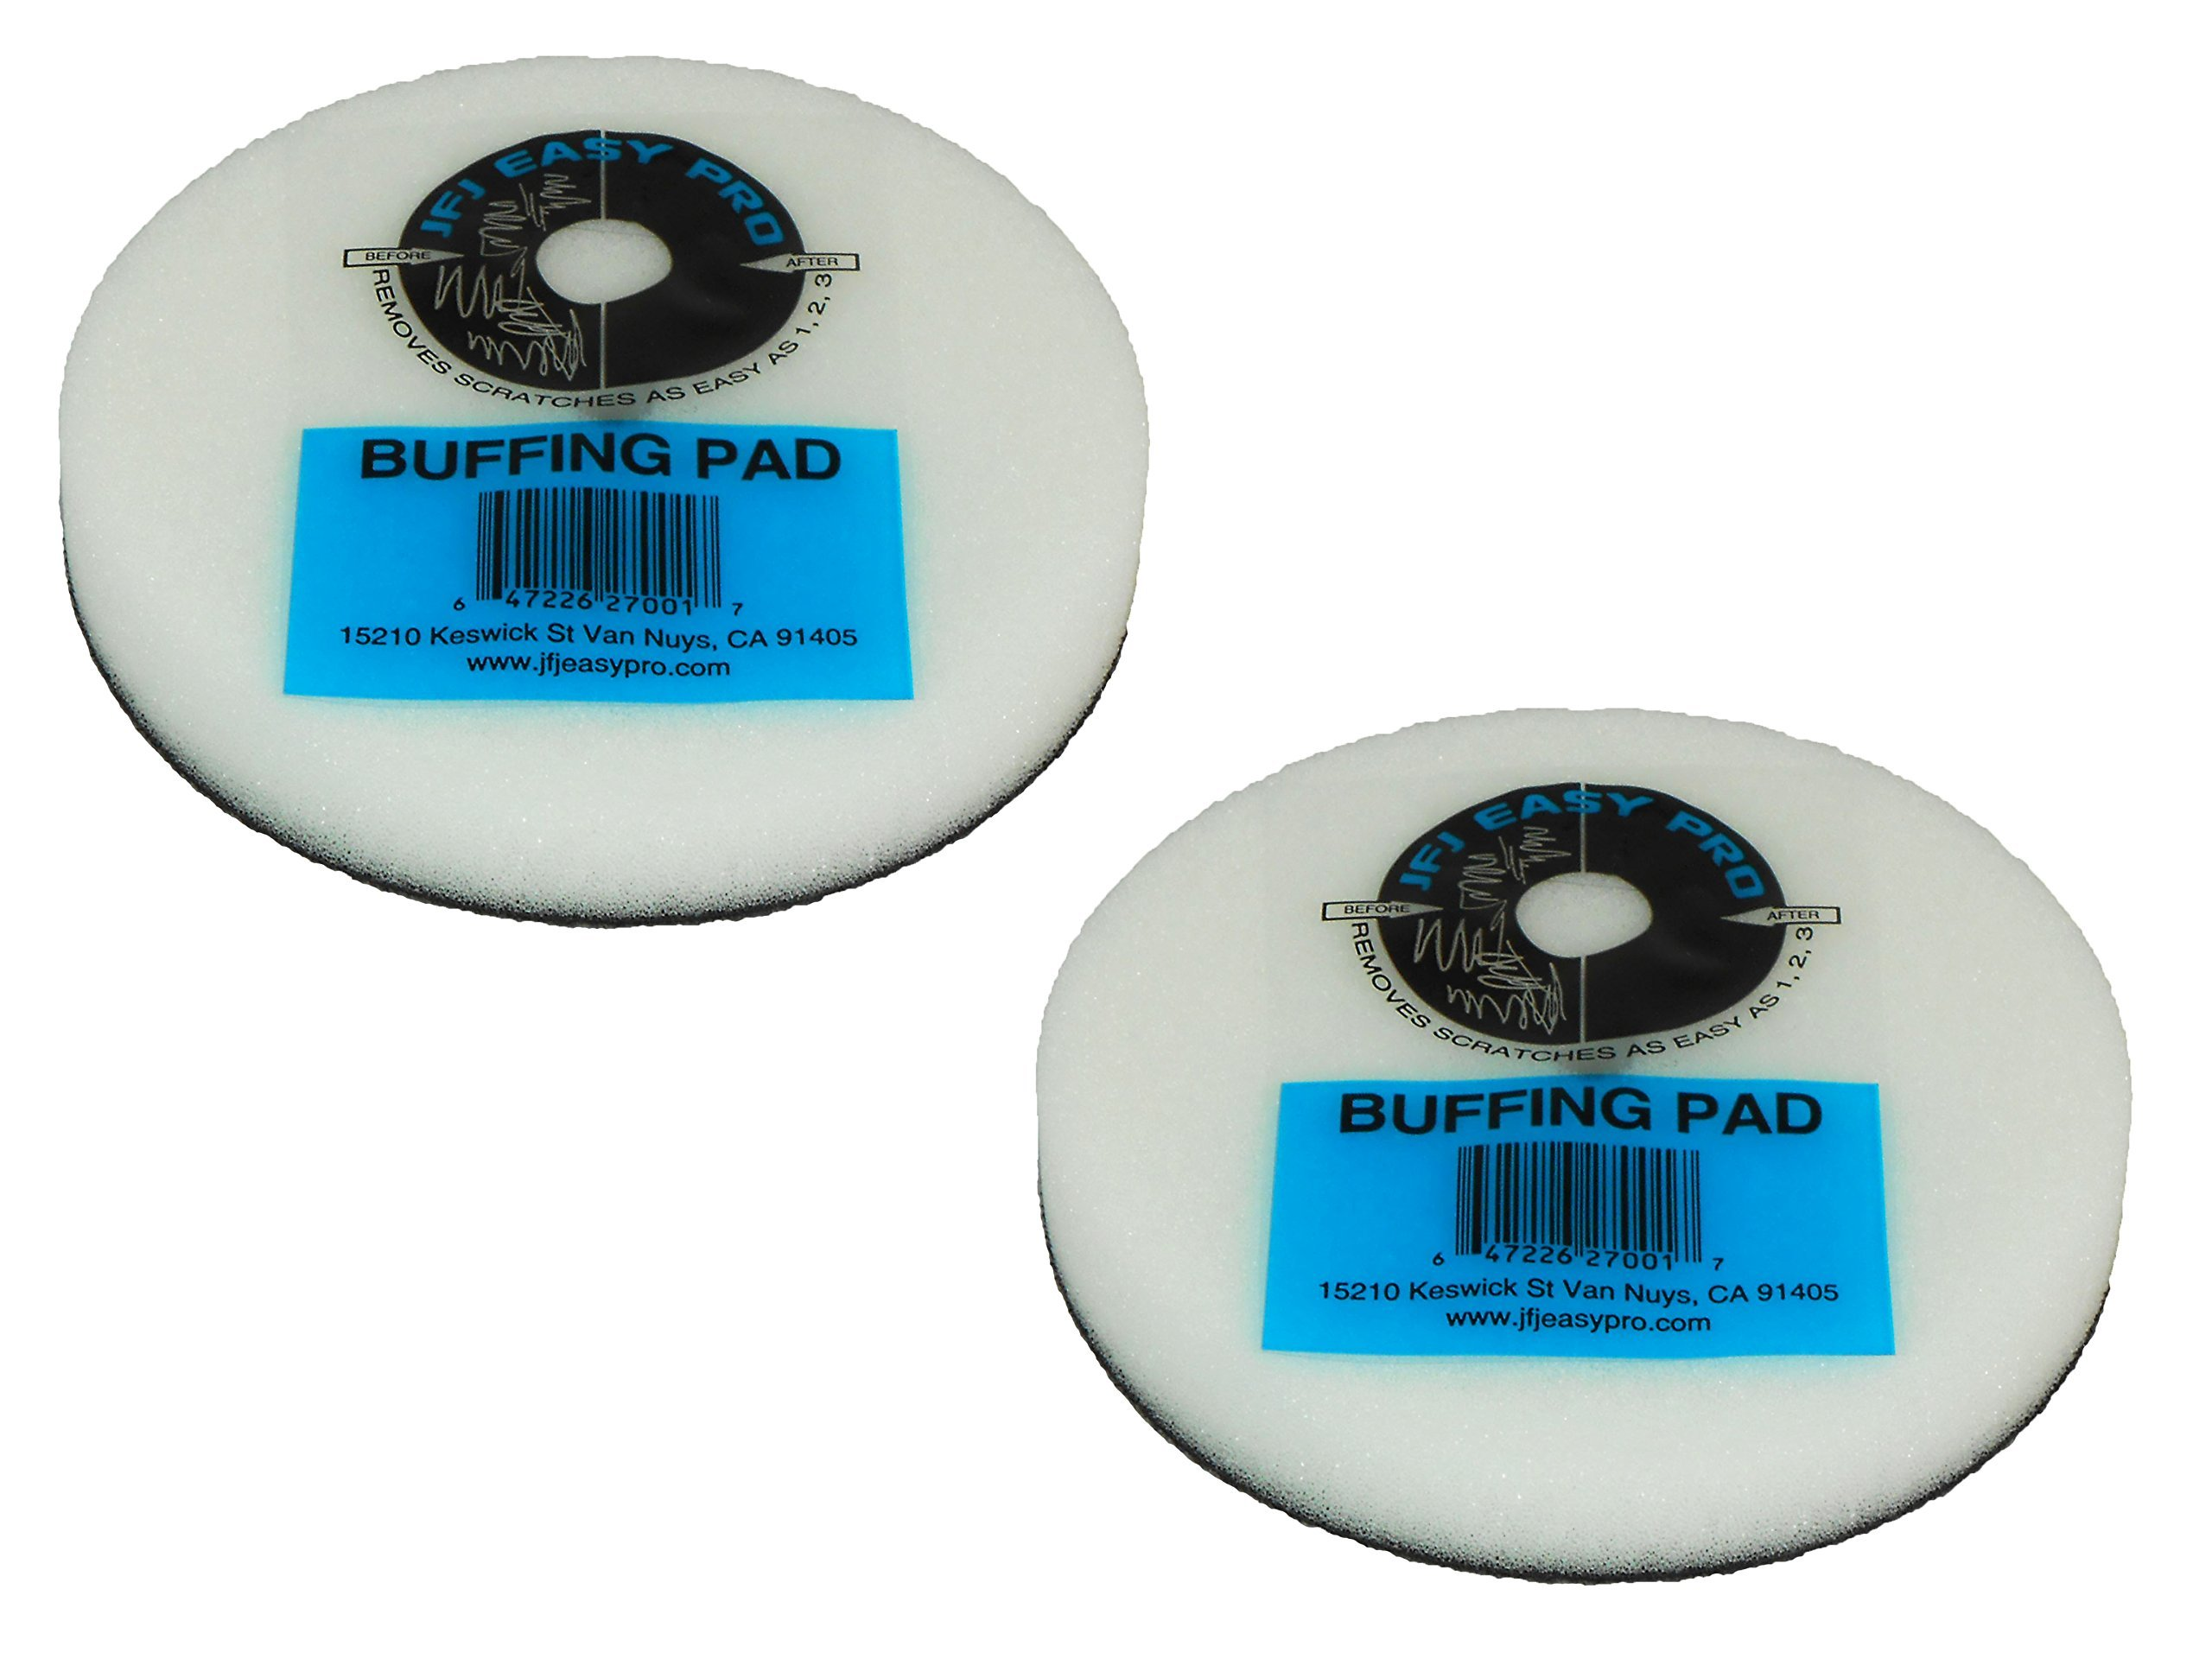 2 Pack Original JFJ Easy Pro Buffing Pads by JFJ